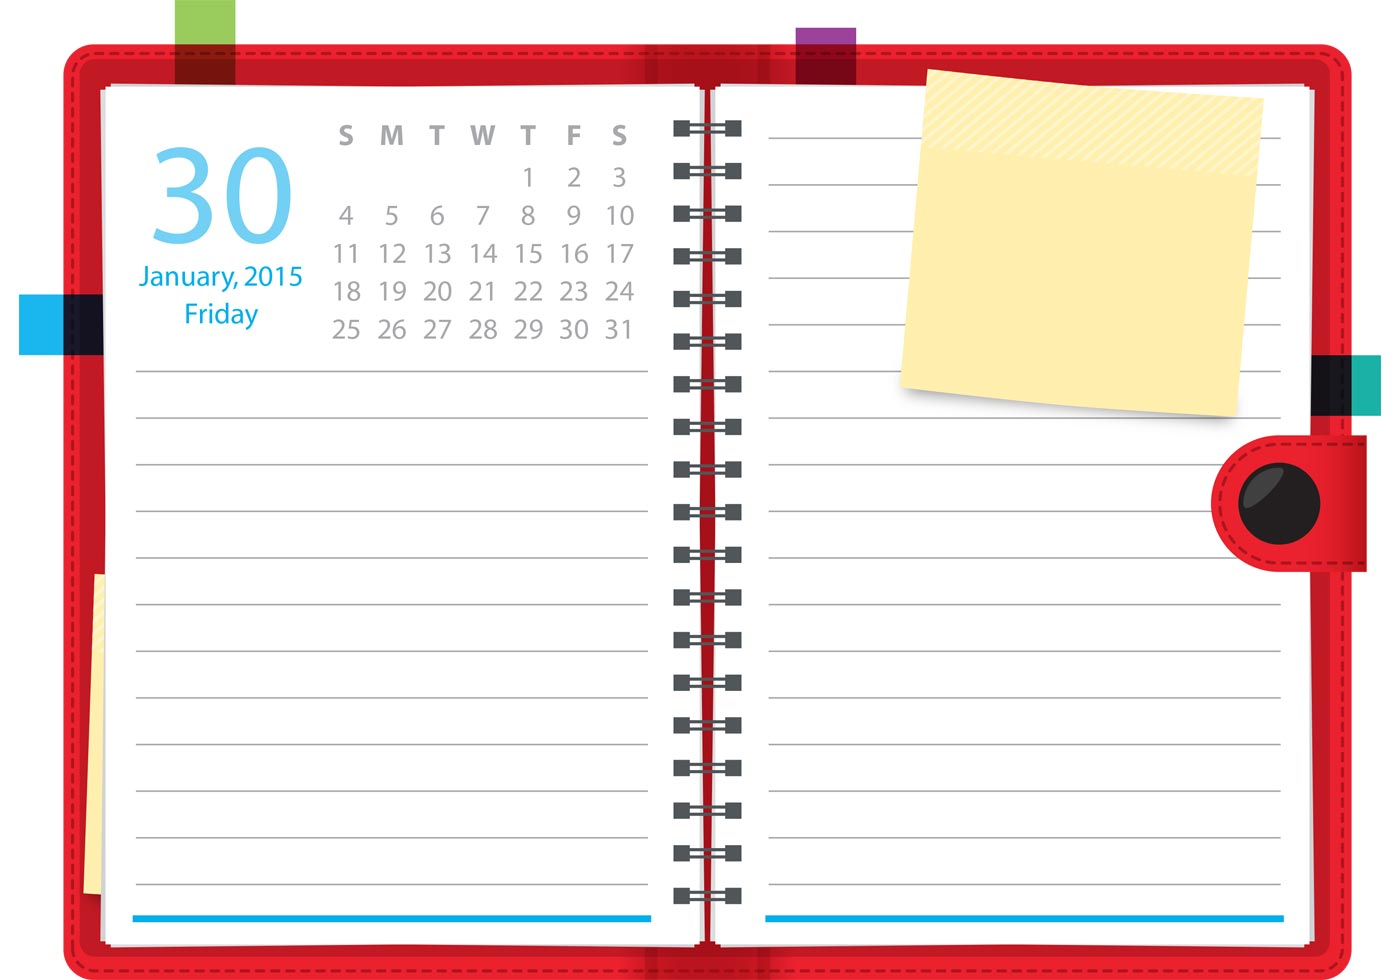 Planner Calendar Notebook Free Download : Daily planner vector notebook download free art